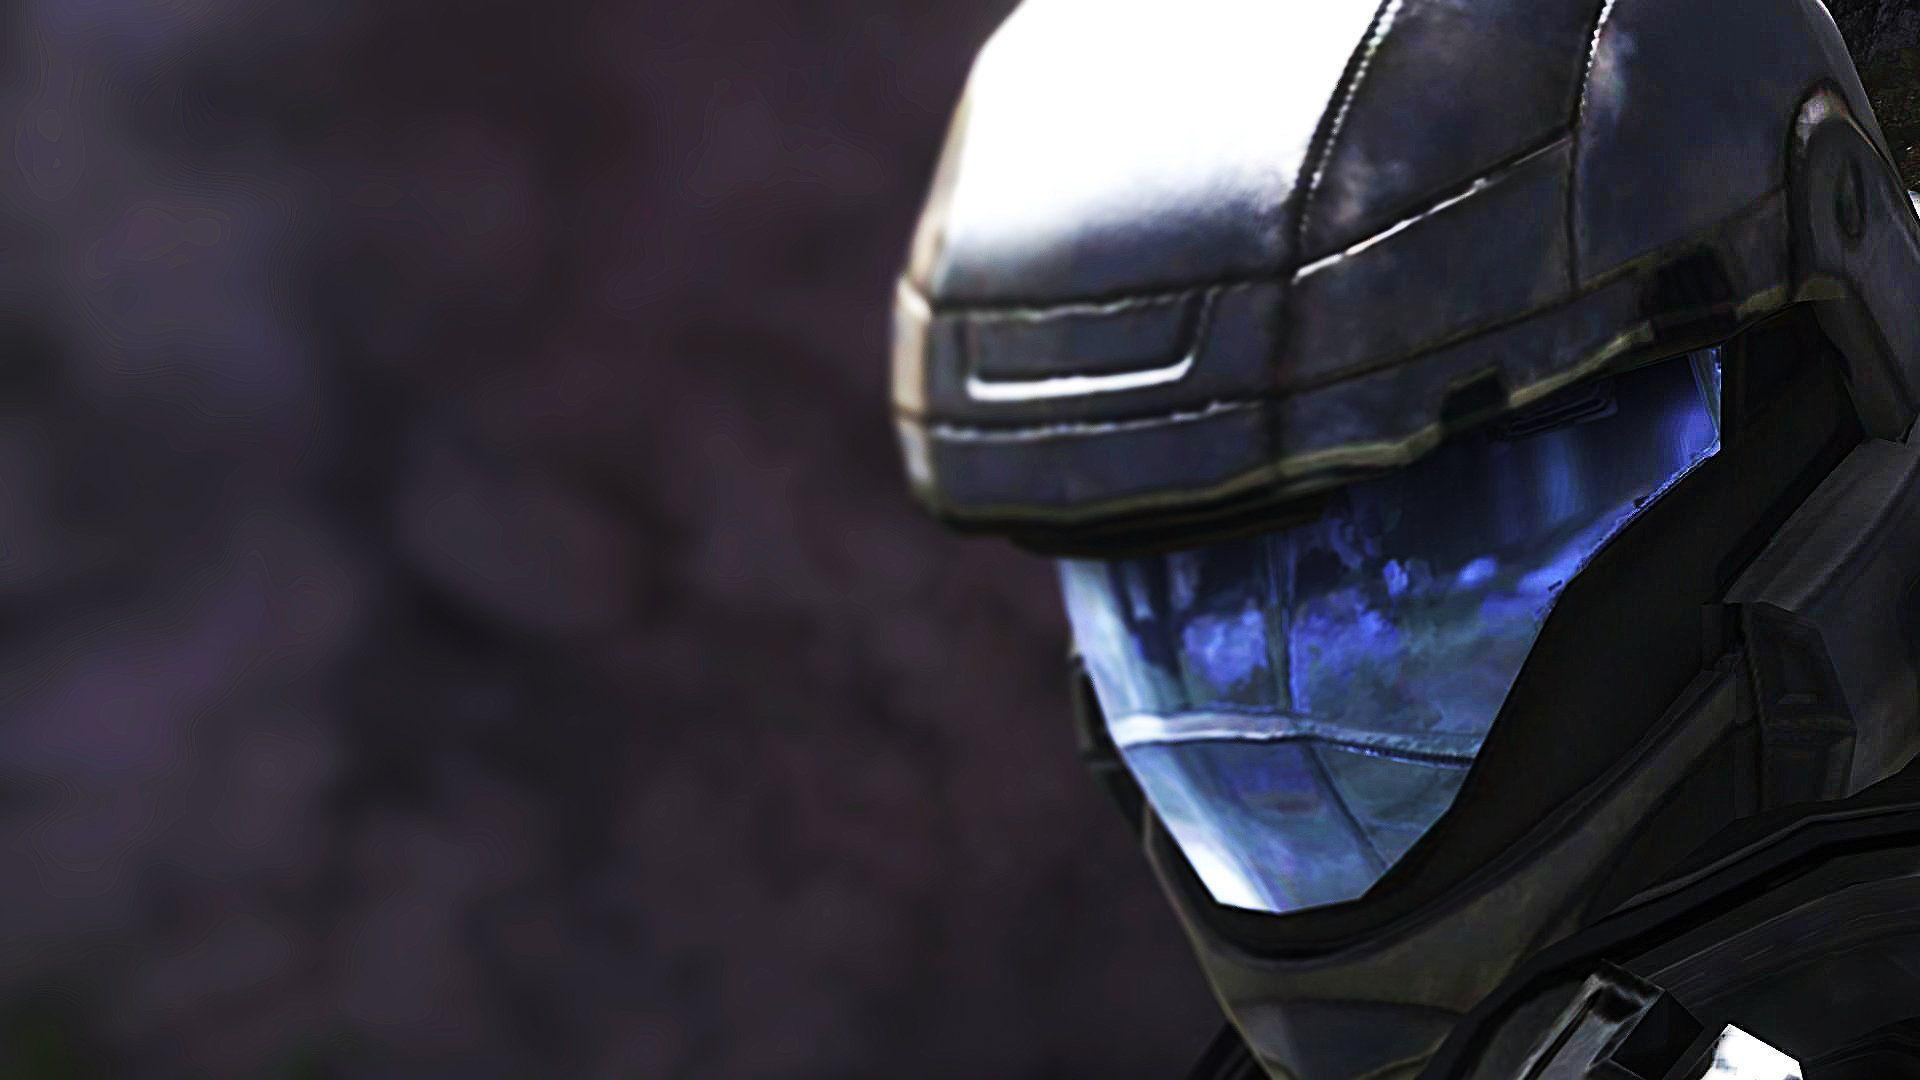 Halo 3 Odst Wallpapers Wallpaper Cave